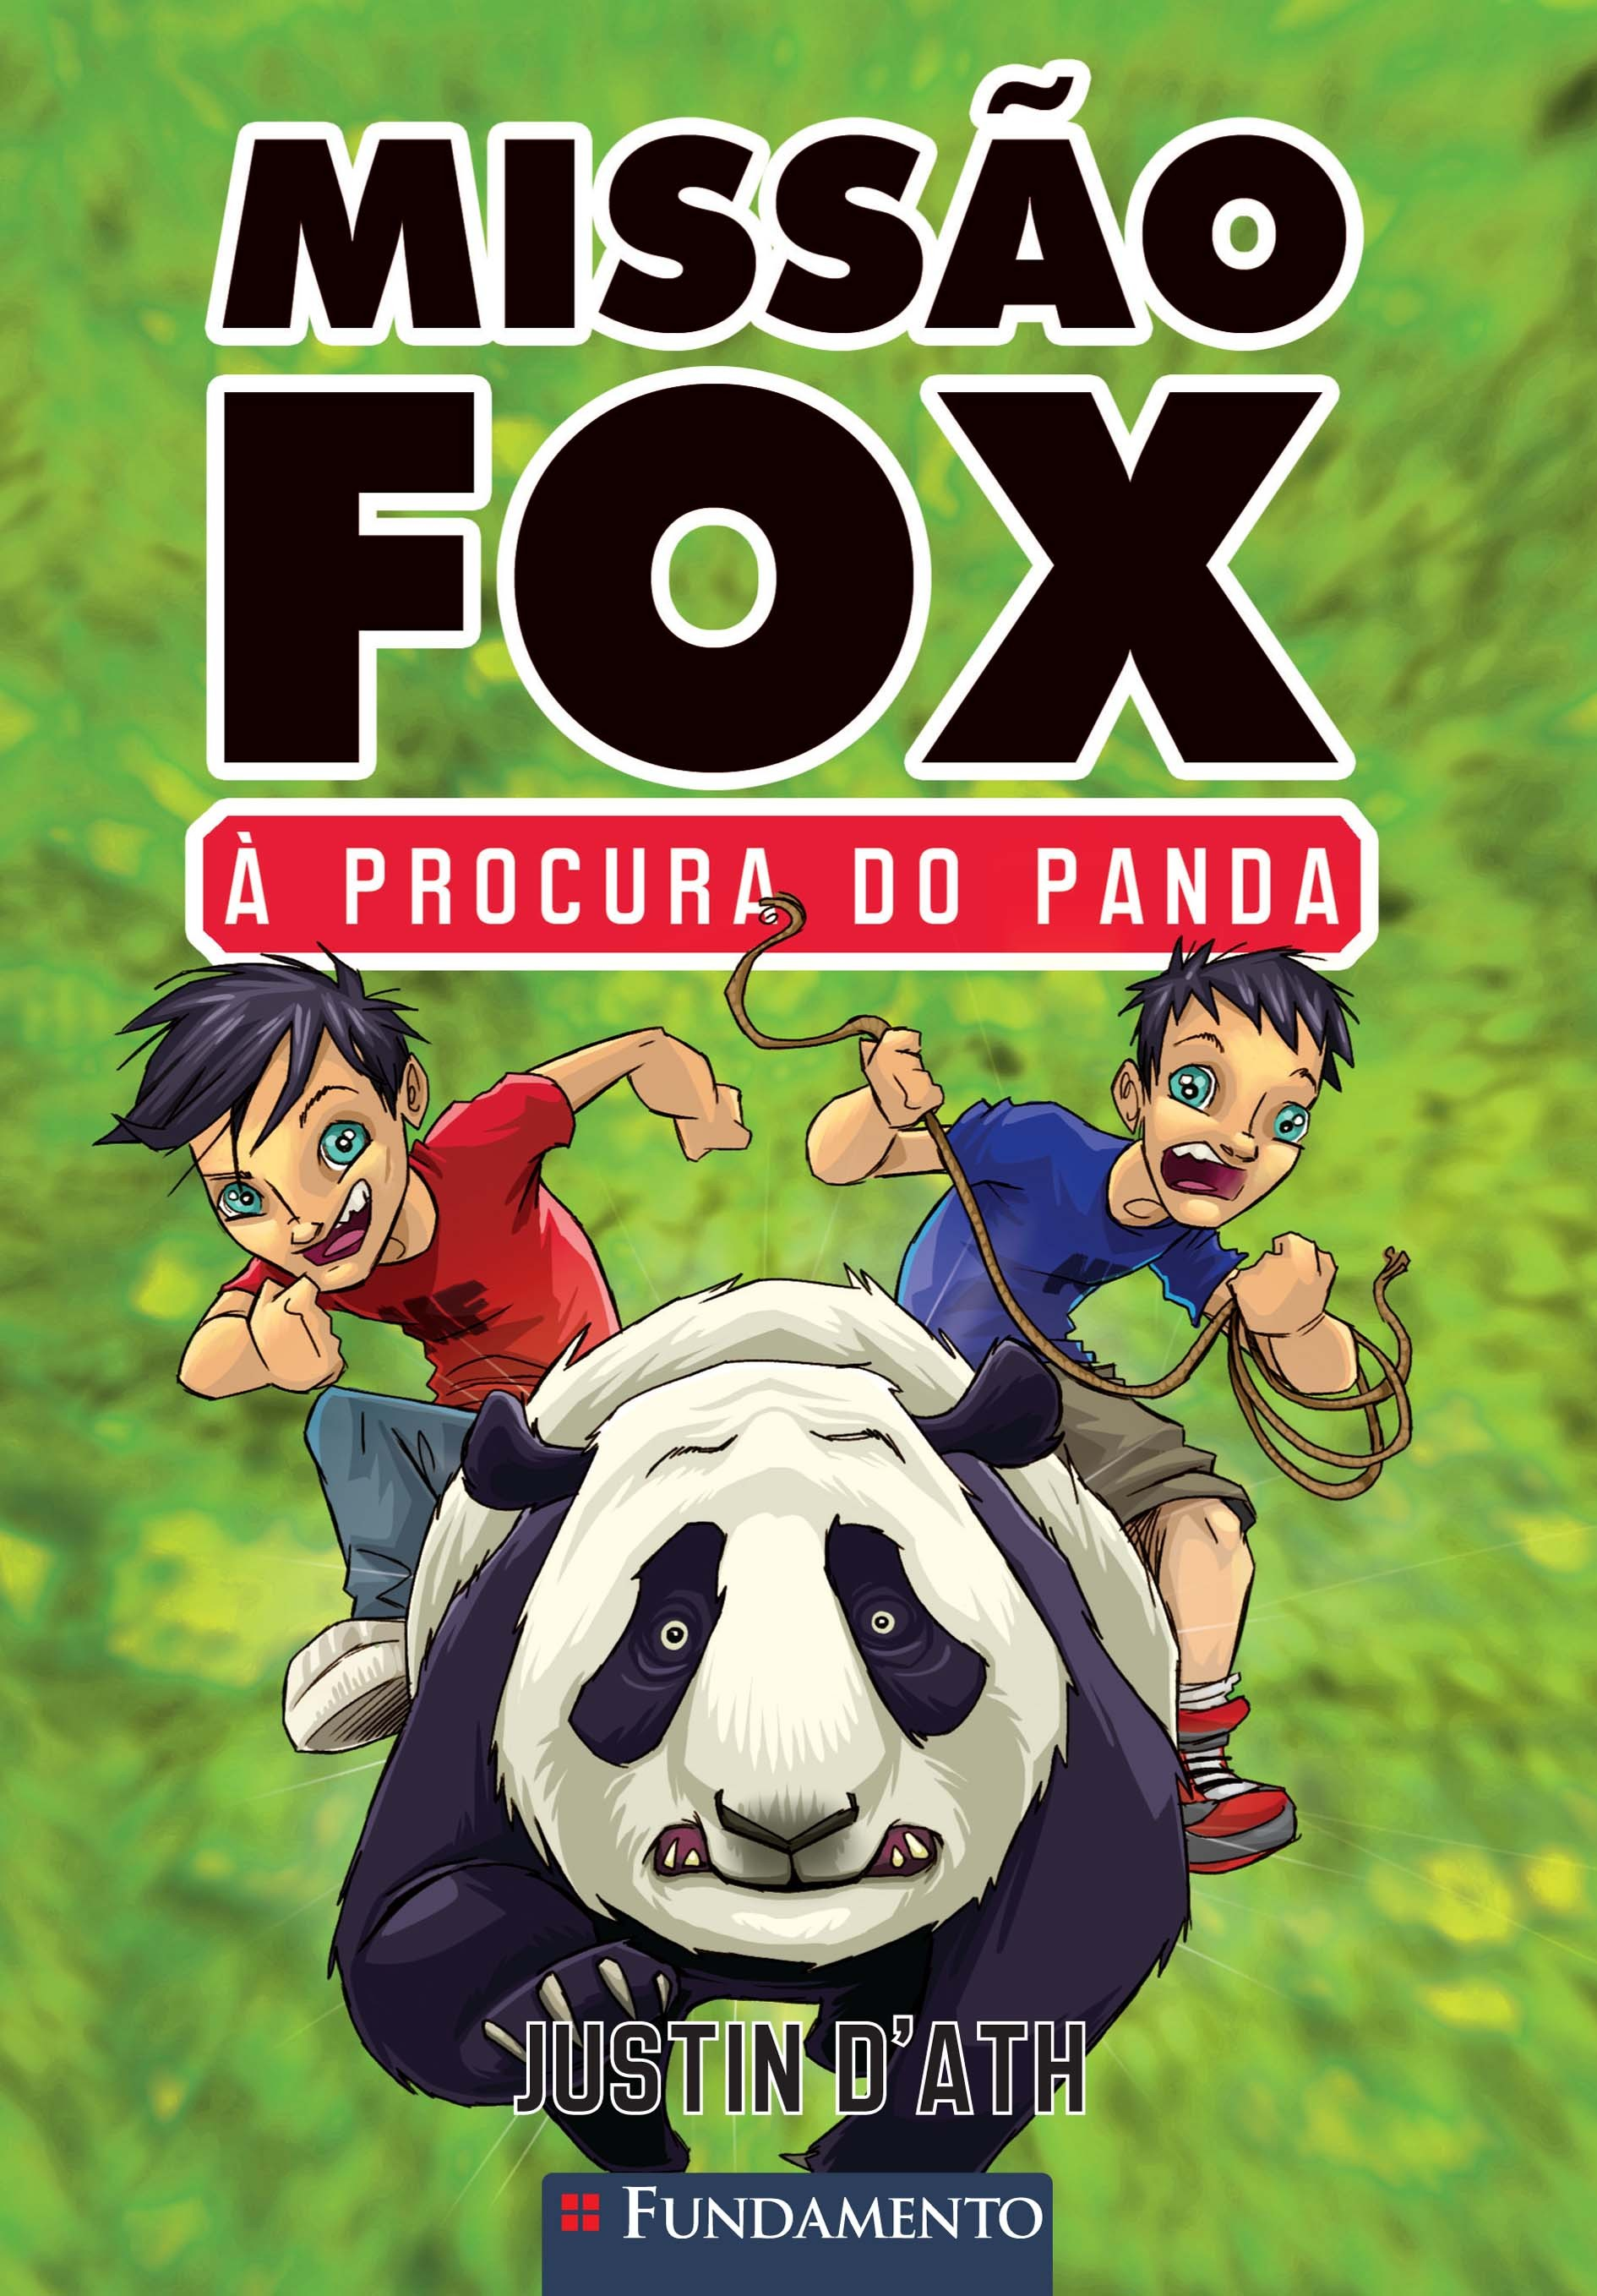 Missão fox 02 - À procura do panda